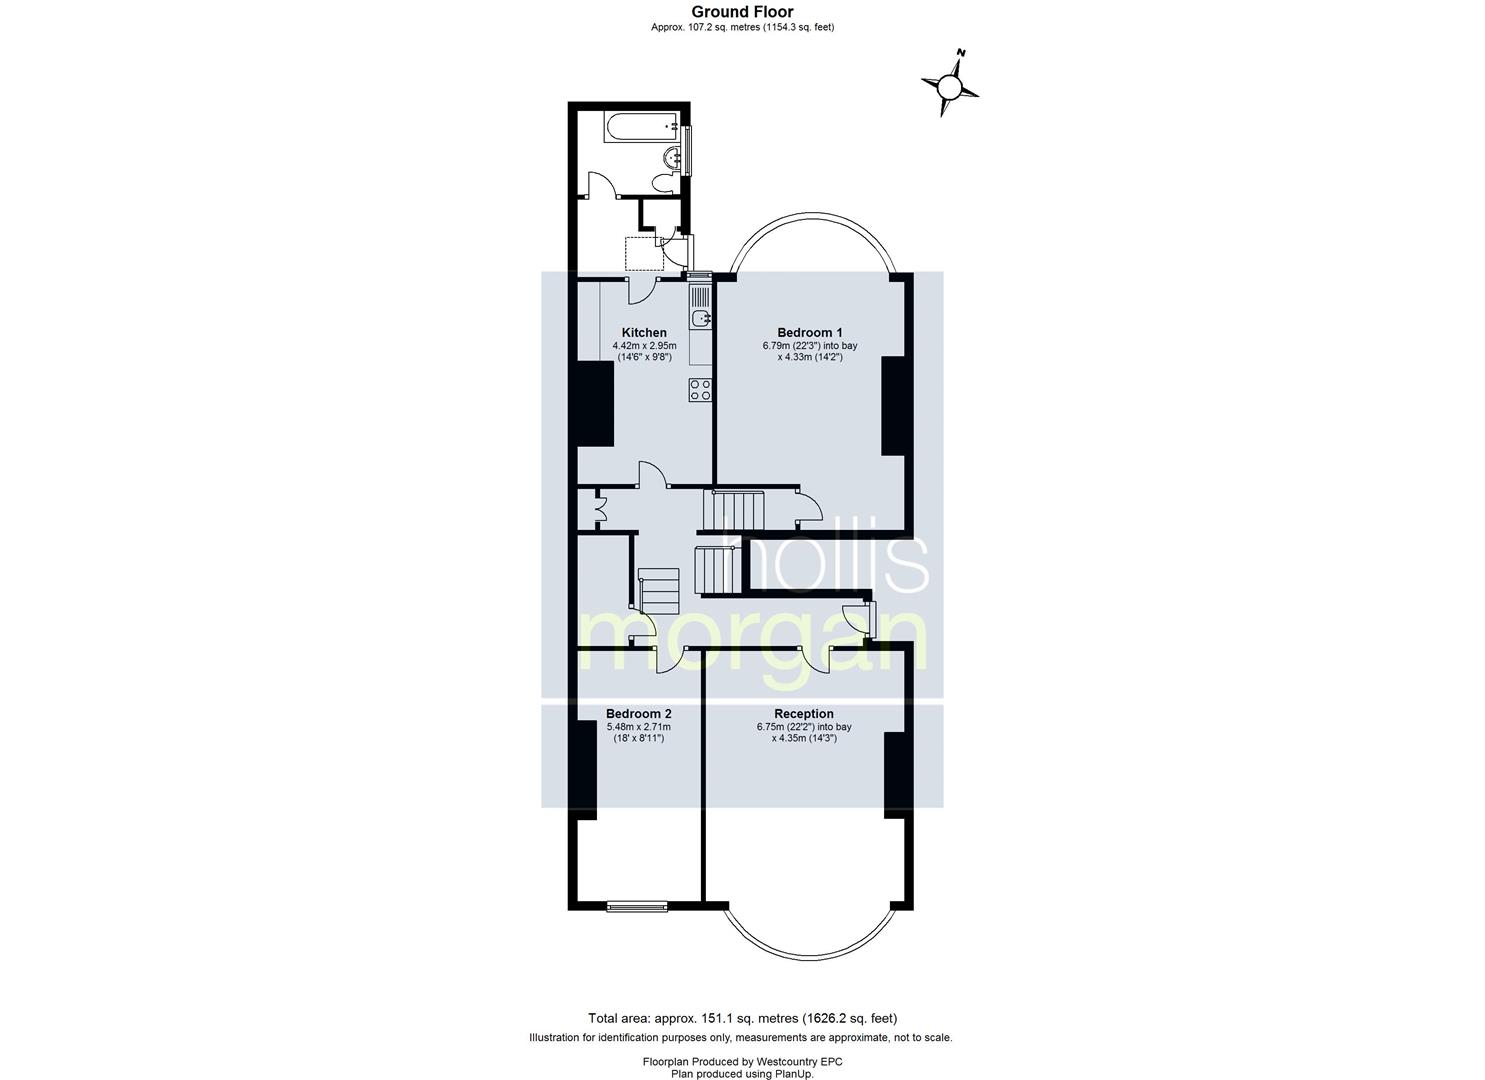 Floorplans For Whatley Road, Clifton, Bristol